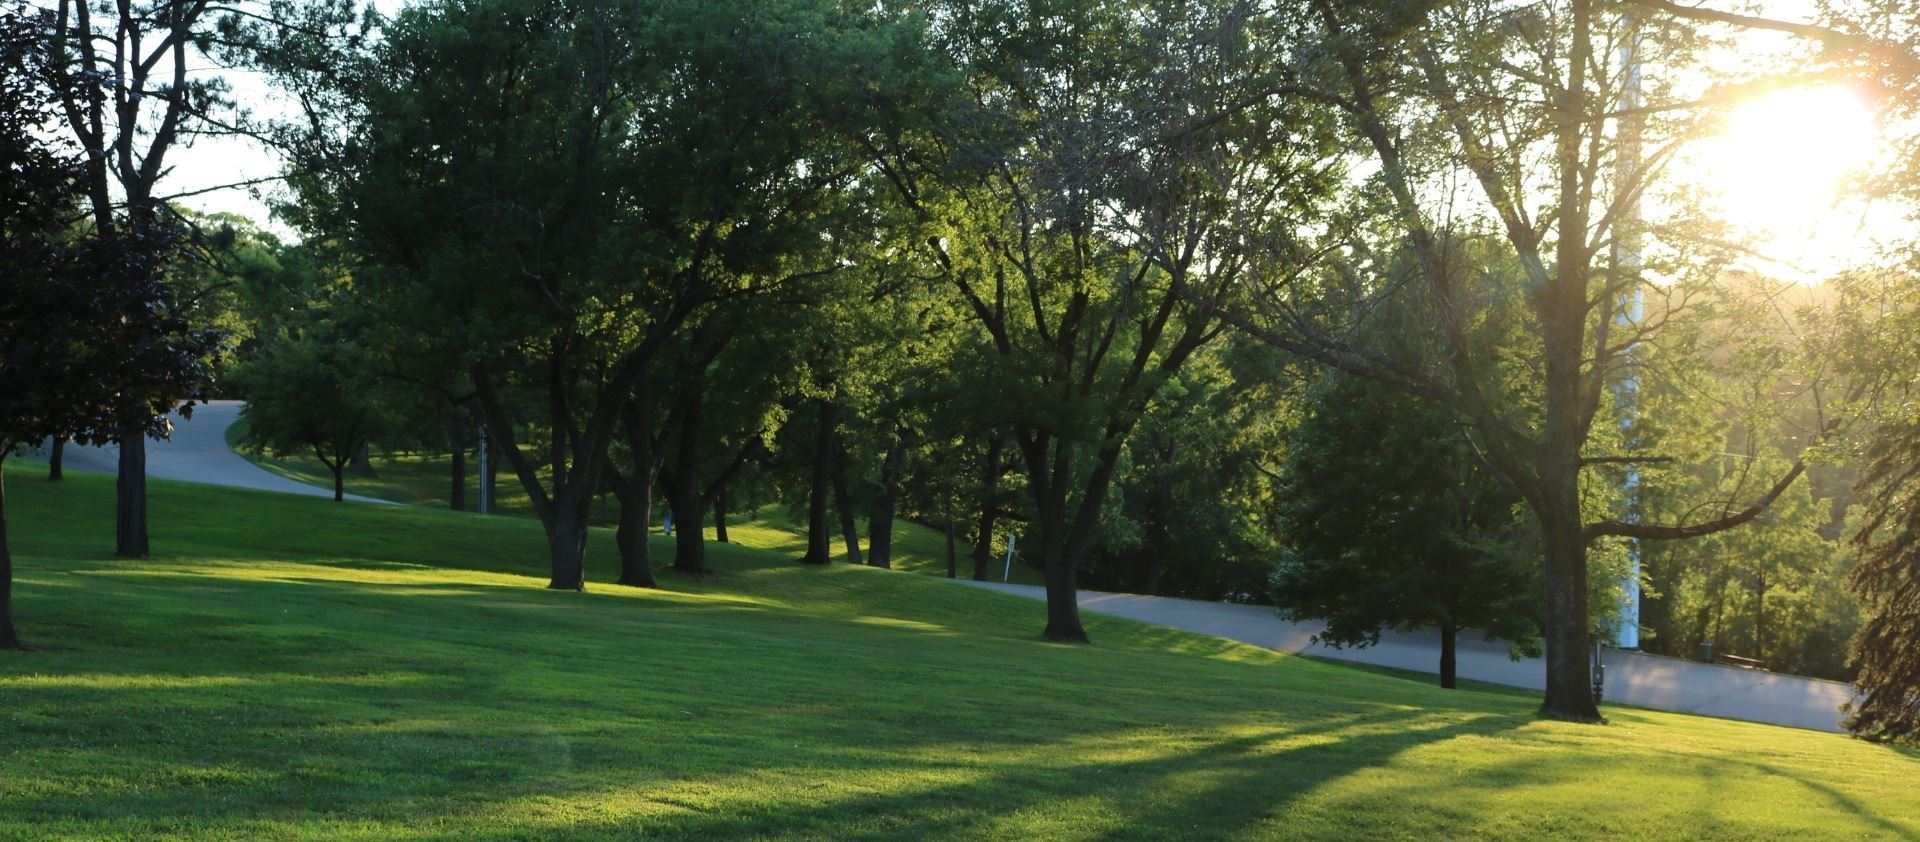 Murphy Park is an 80 park with plenty of multipurpose green space.